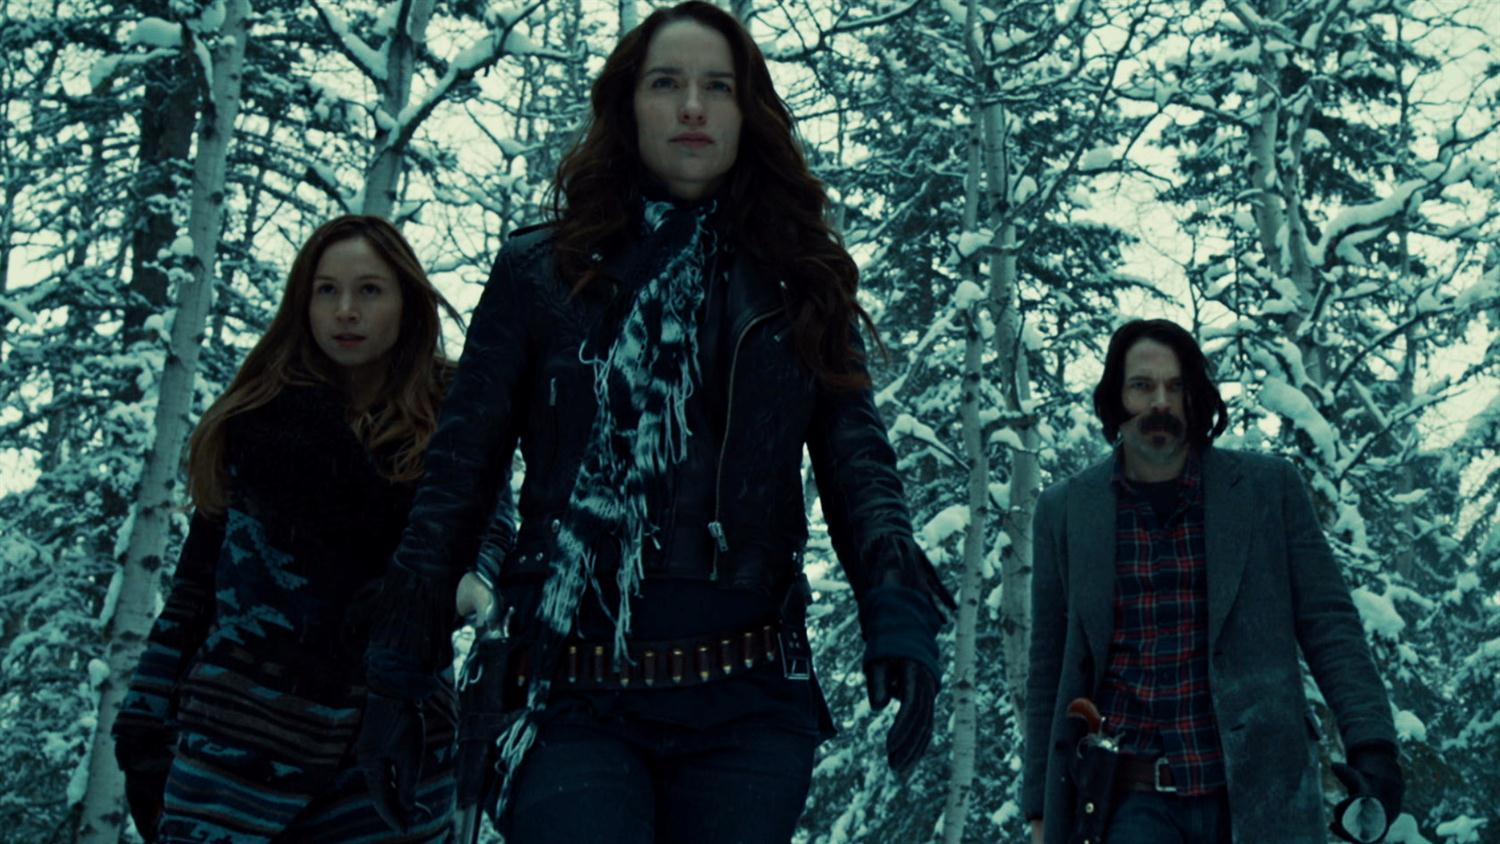 Wynonna Earp Season 2 Trailer #2